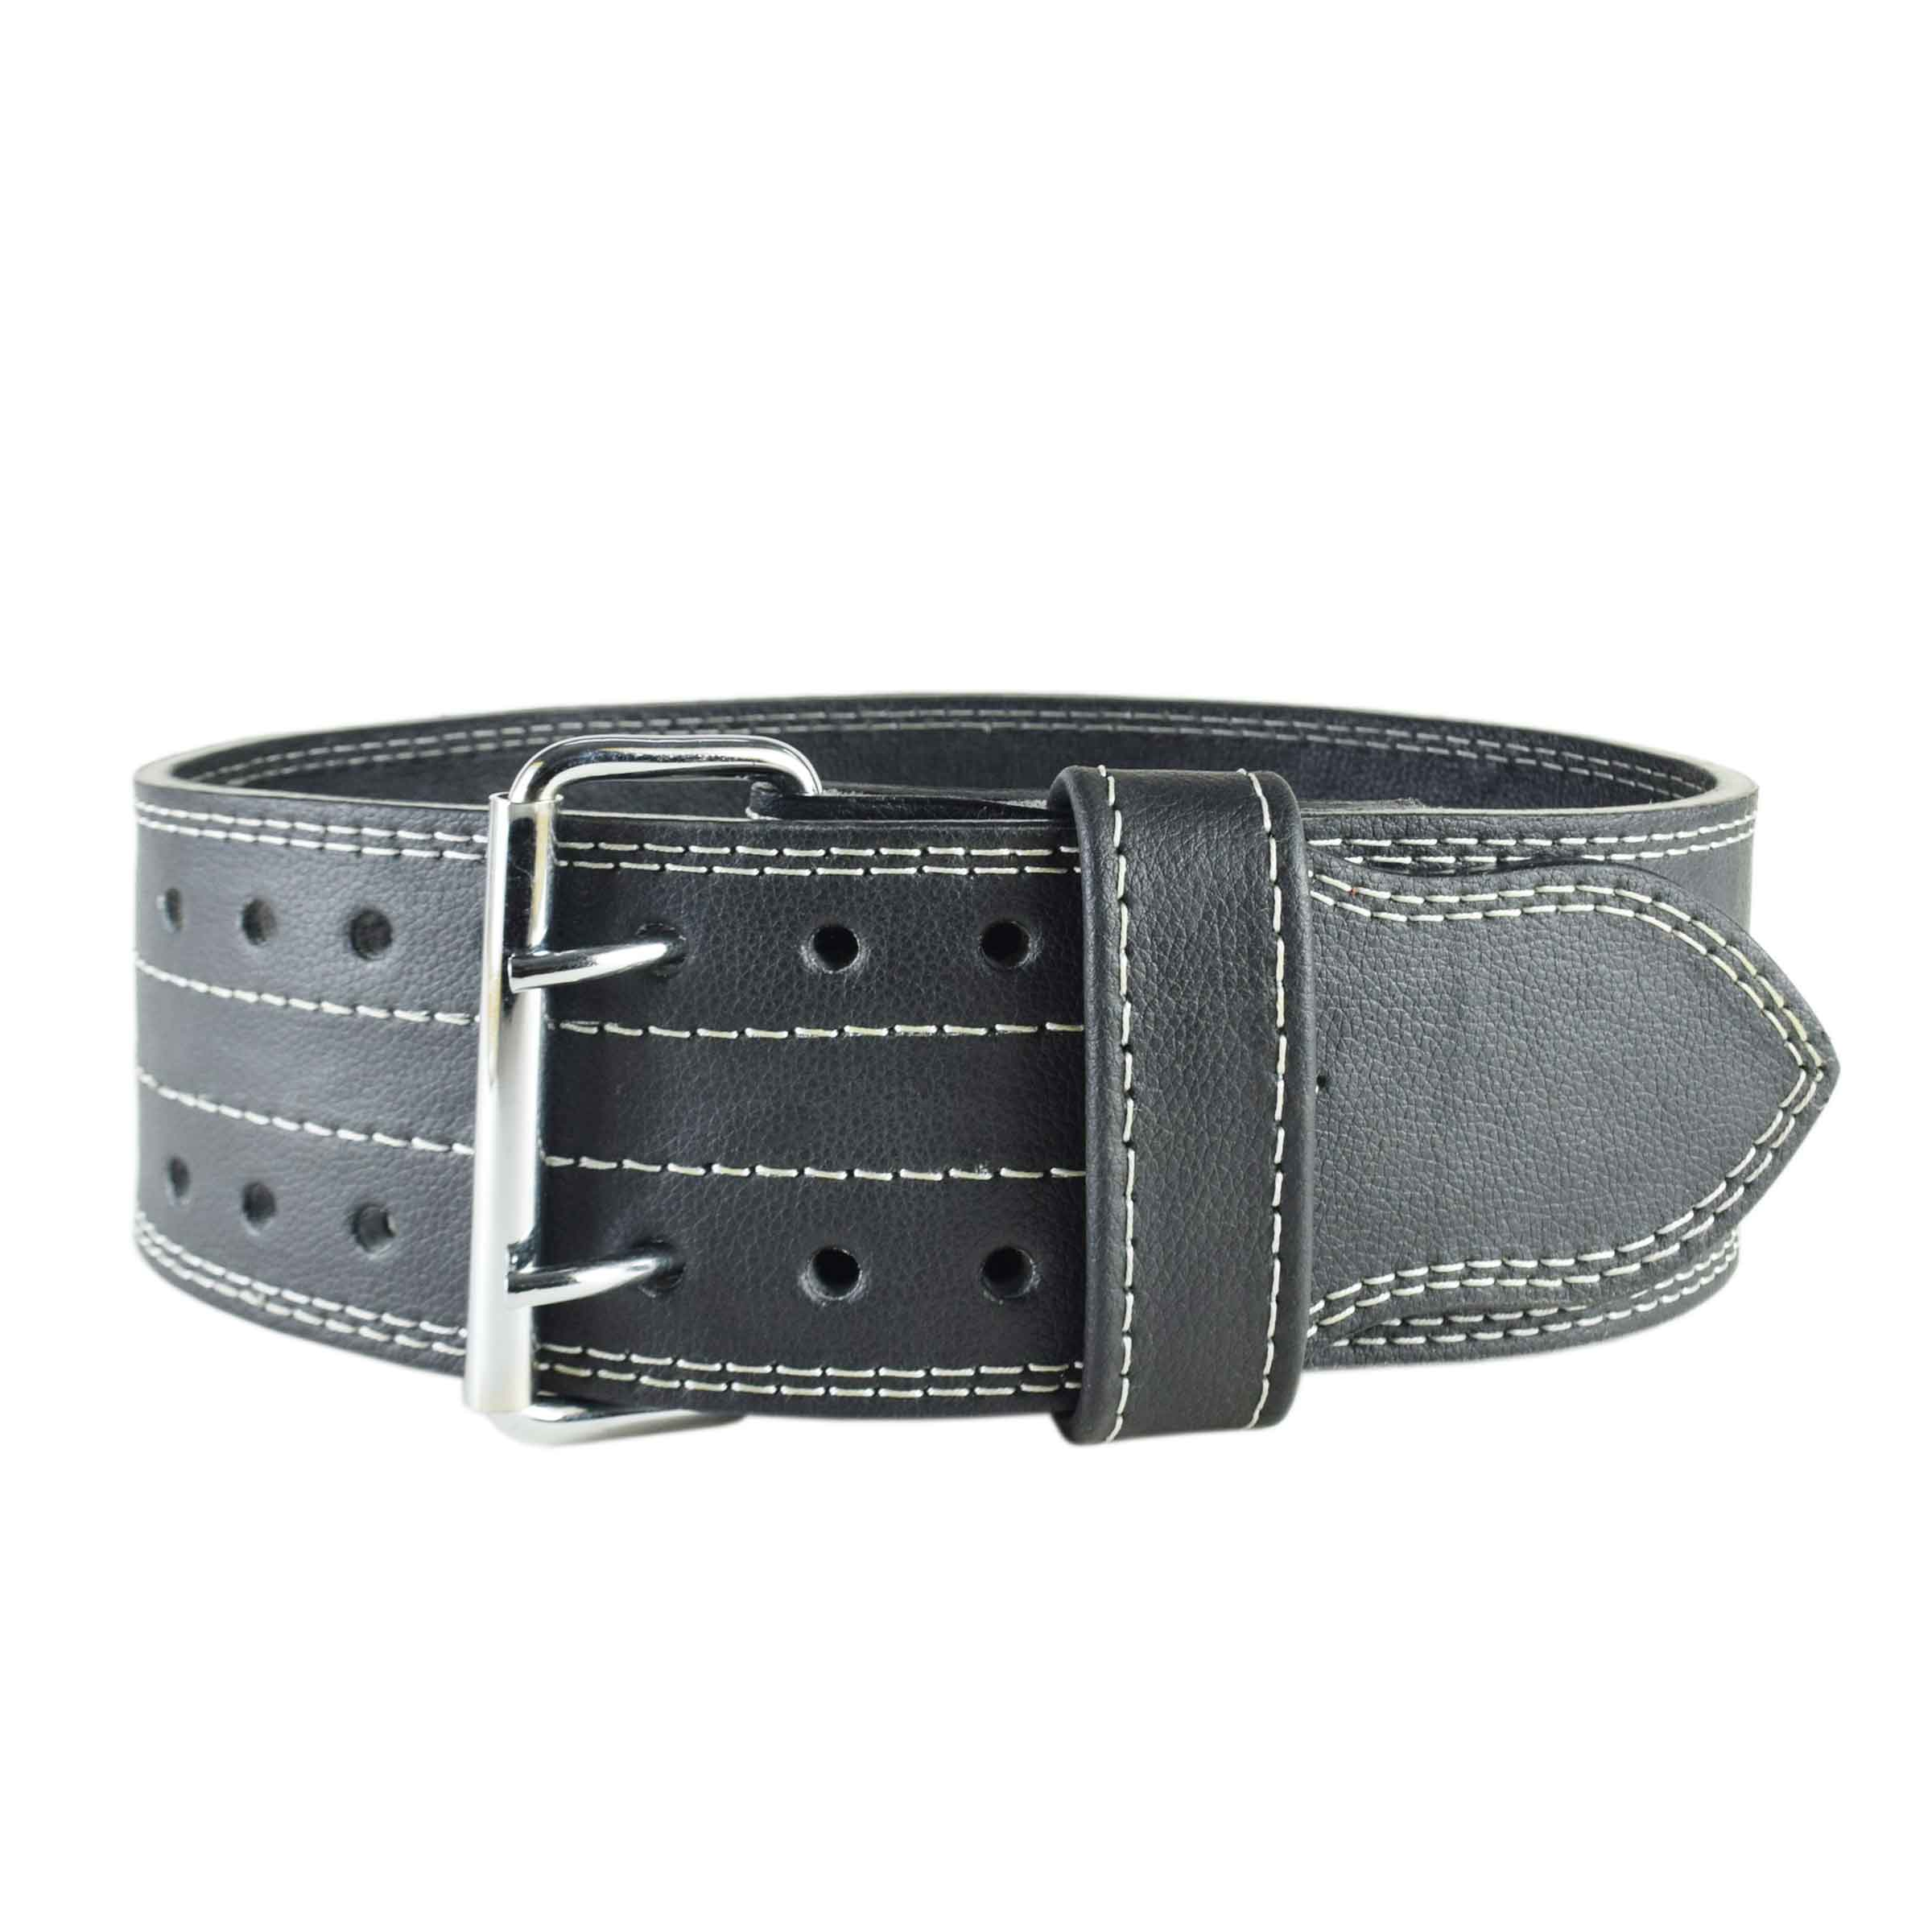 SHINY BLACK WEIGHTLIFTING BELT